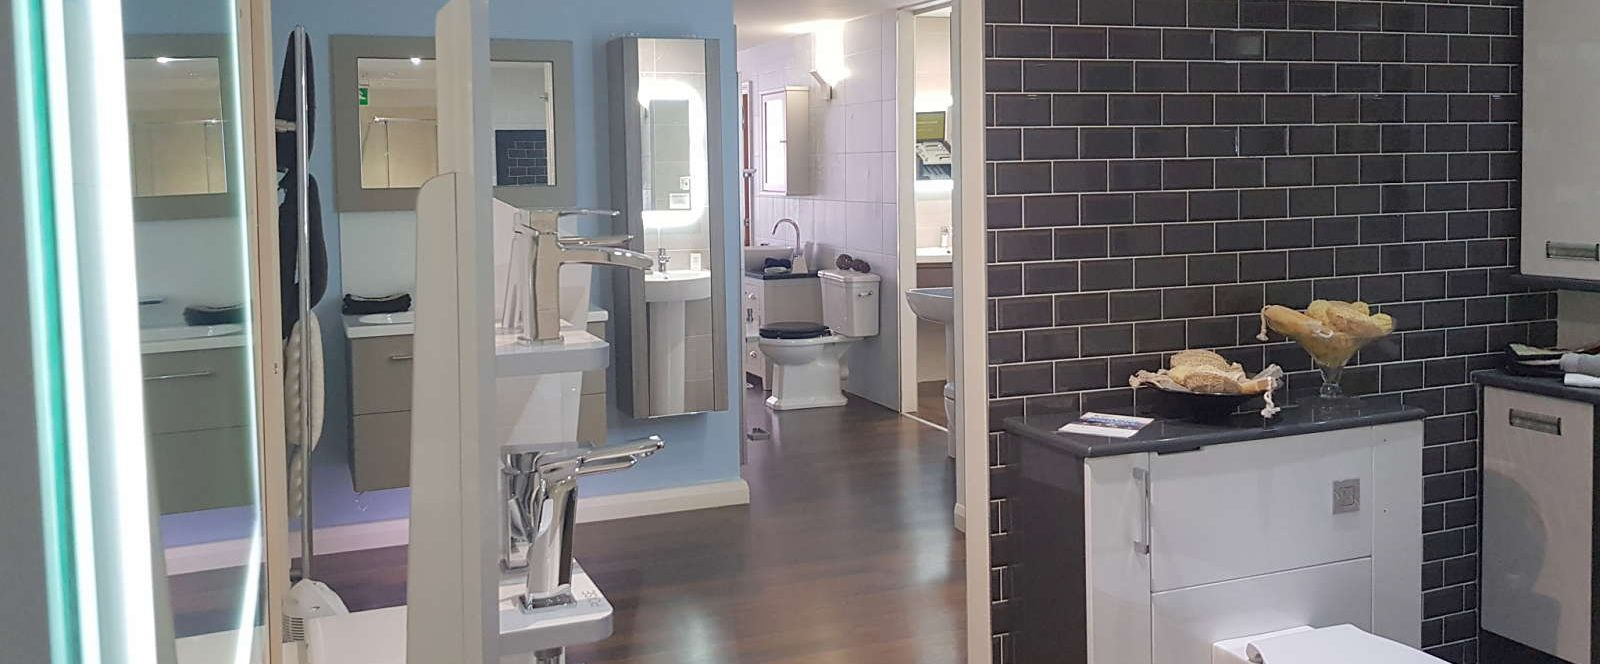 The Janus Interiors bathroom showroom at Bingley Yorkshire